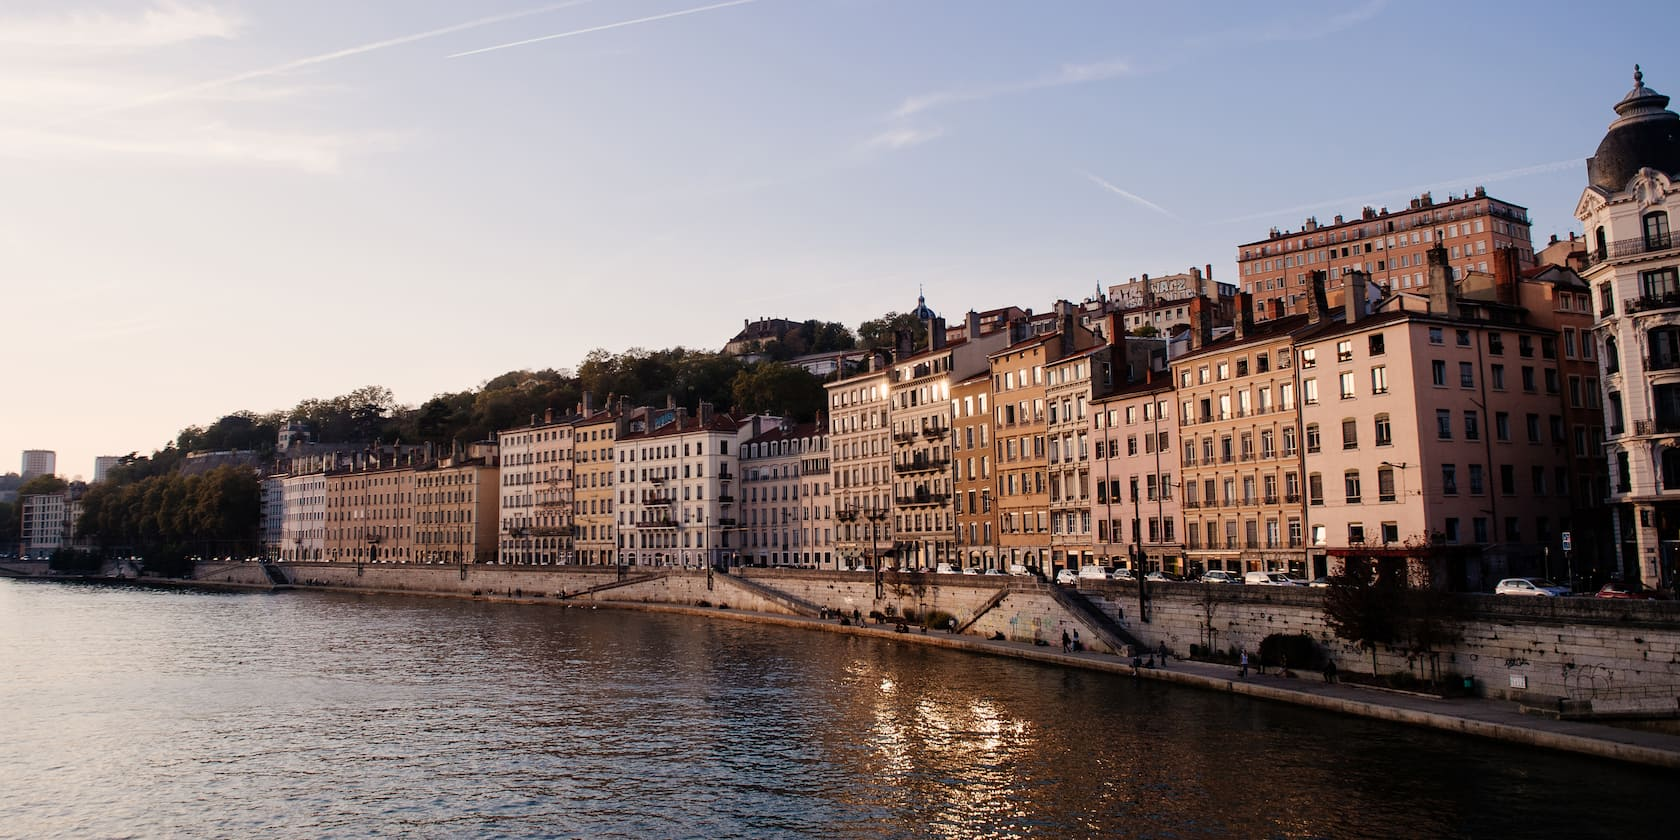 Buildings on a bank of the Rhône River in Lyon, France